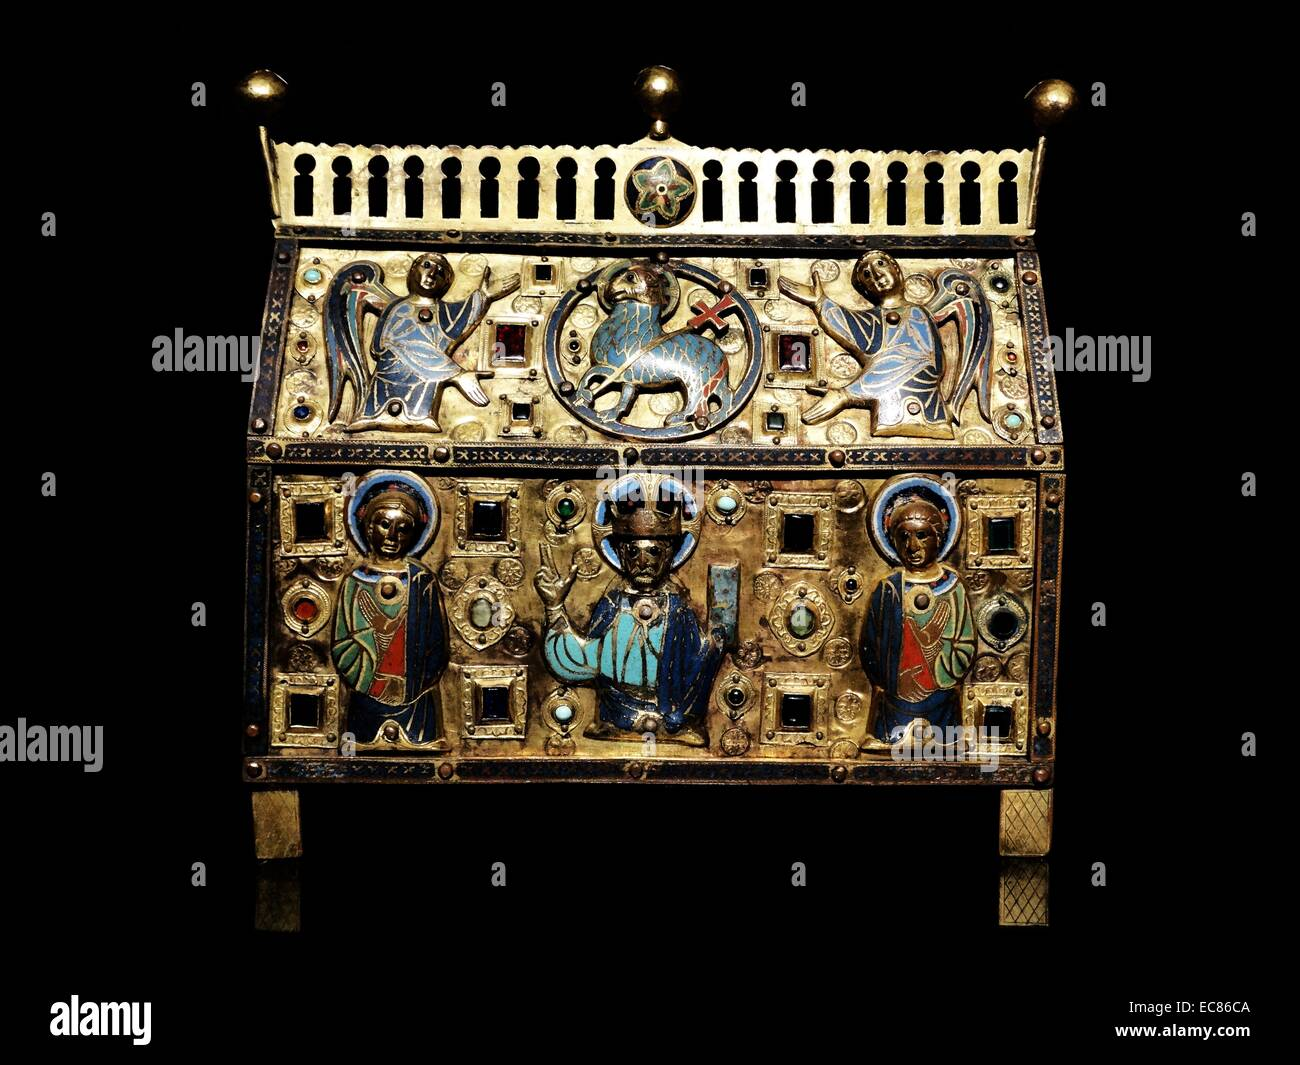 Reliquary decorated with Christ, Saints and Angels. Dated 13th Century - Stock Image